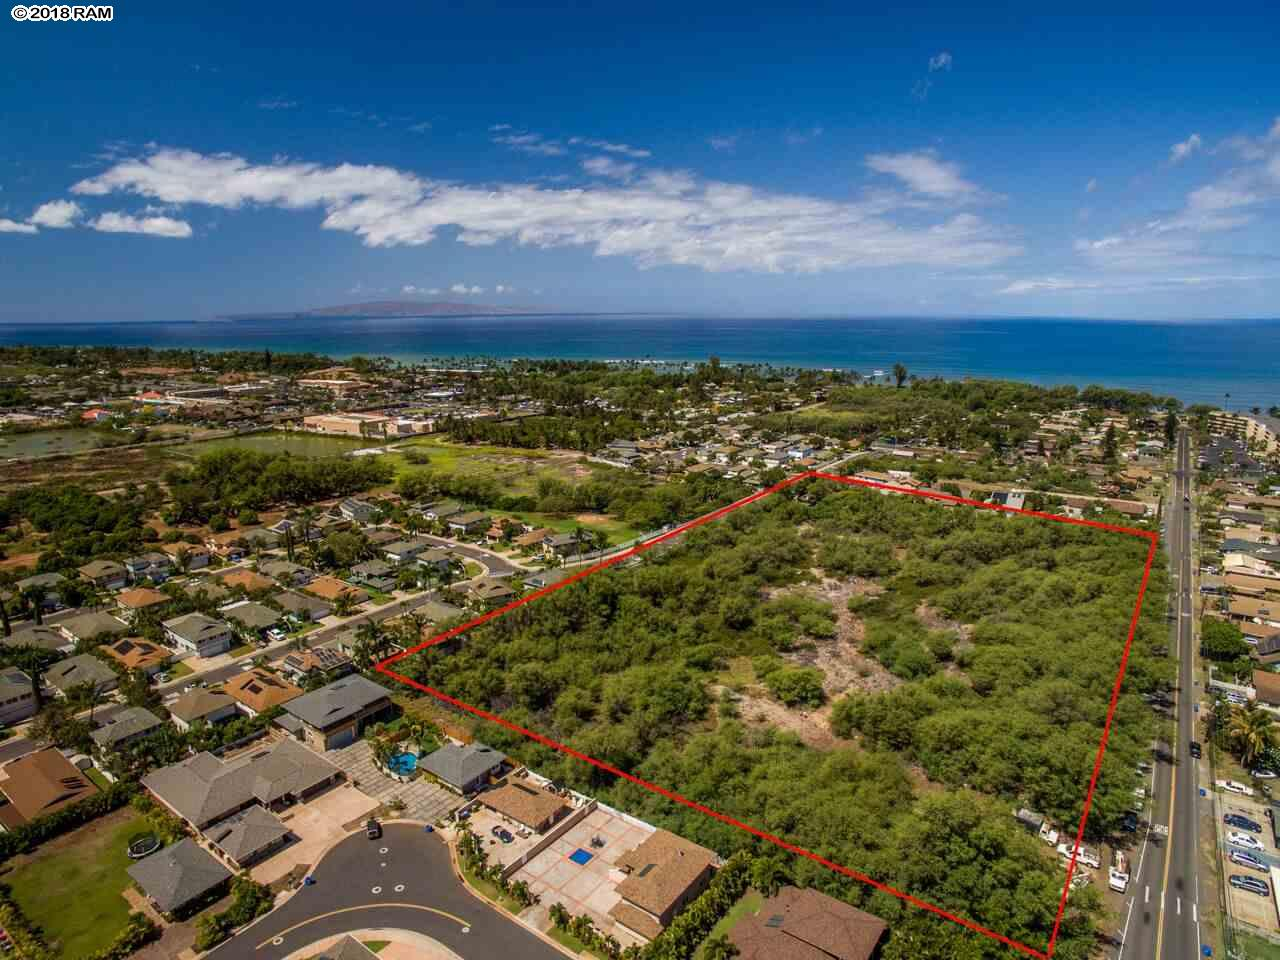 0 Waipuilani Rd in Piilani Shopping Center - $1,998,750 - Kihei ...